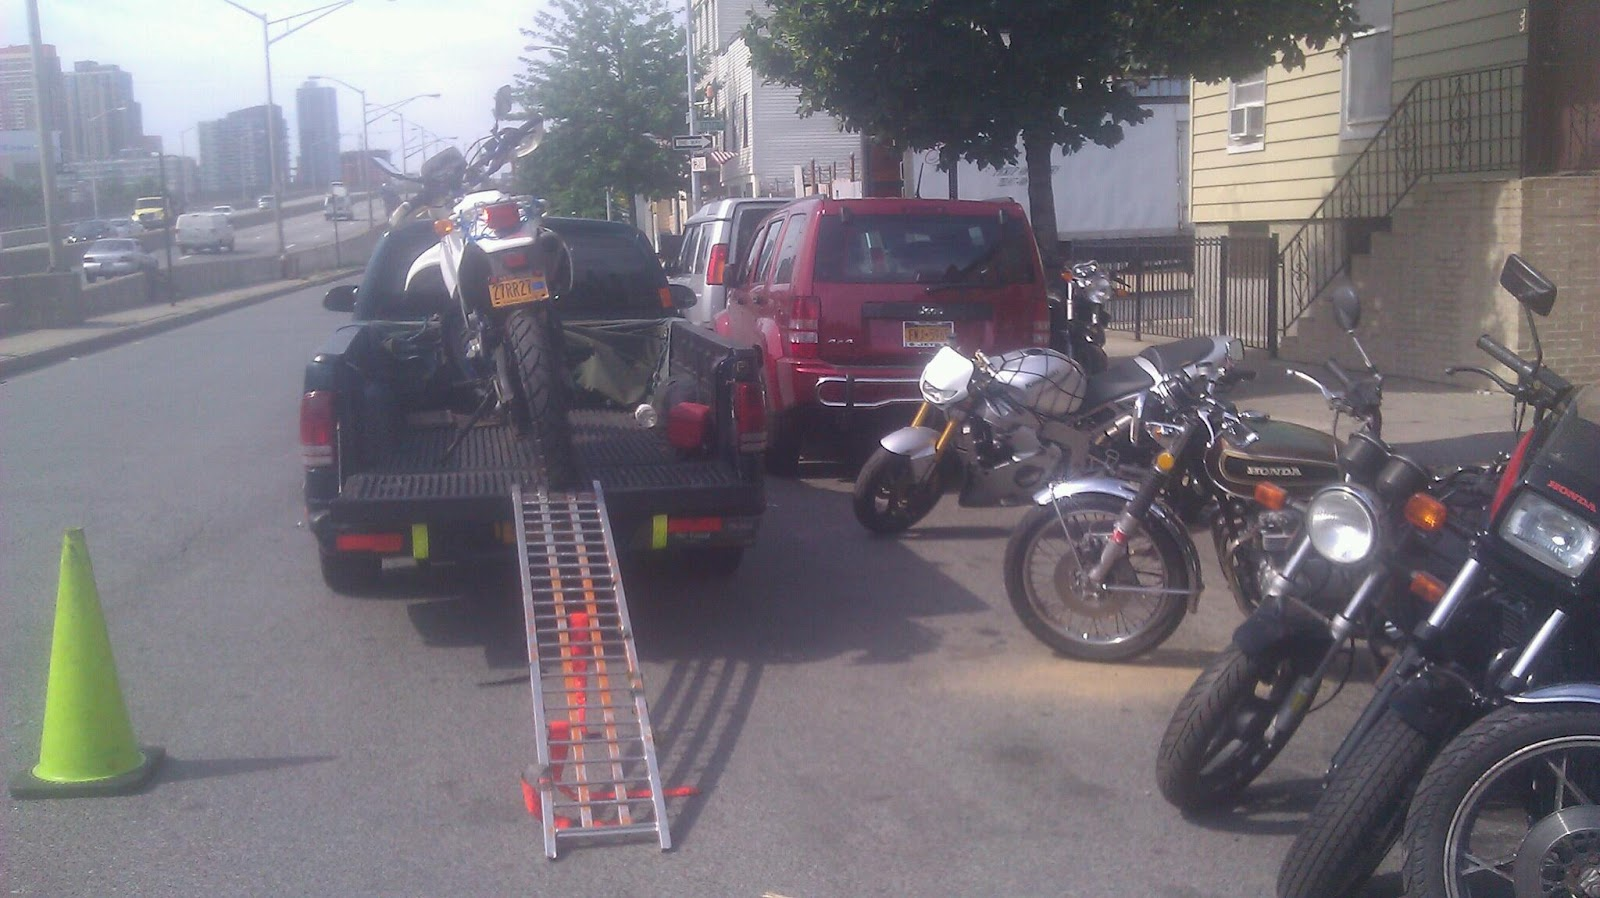 Battery For Motorcycles Tow Will Fix Bike In Shop Motorcycle Haul Queens Brooklyn Manhattan New York City Bronx Pick Up Drop Off Bikes To